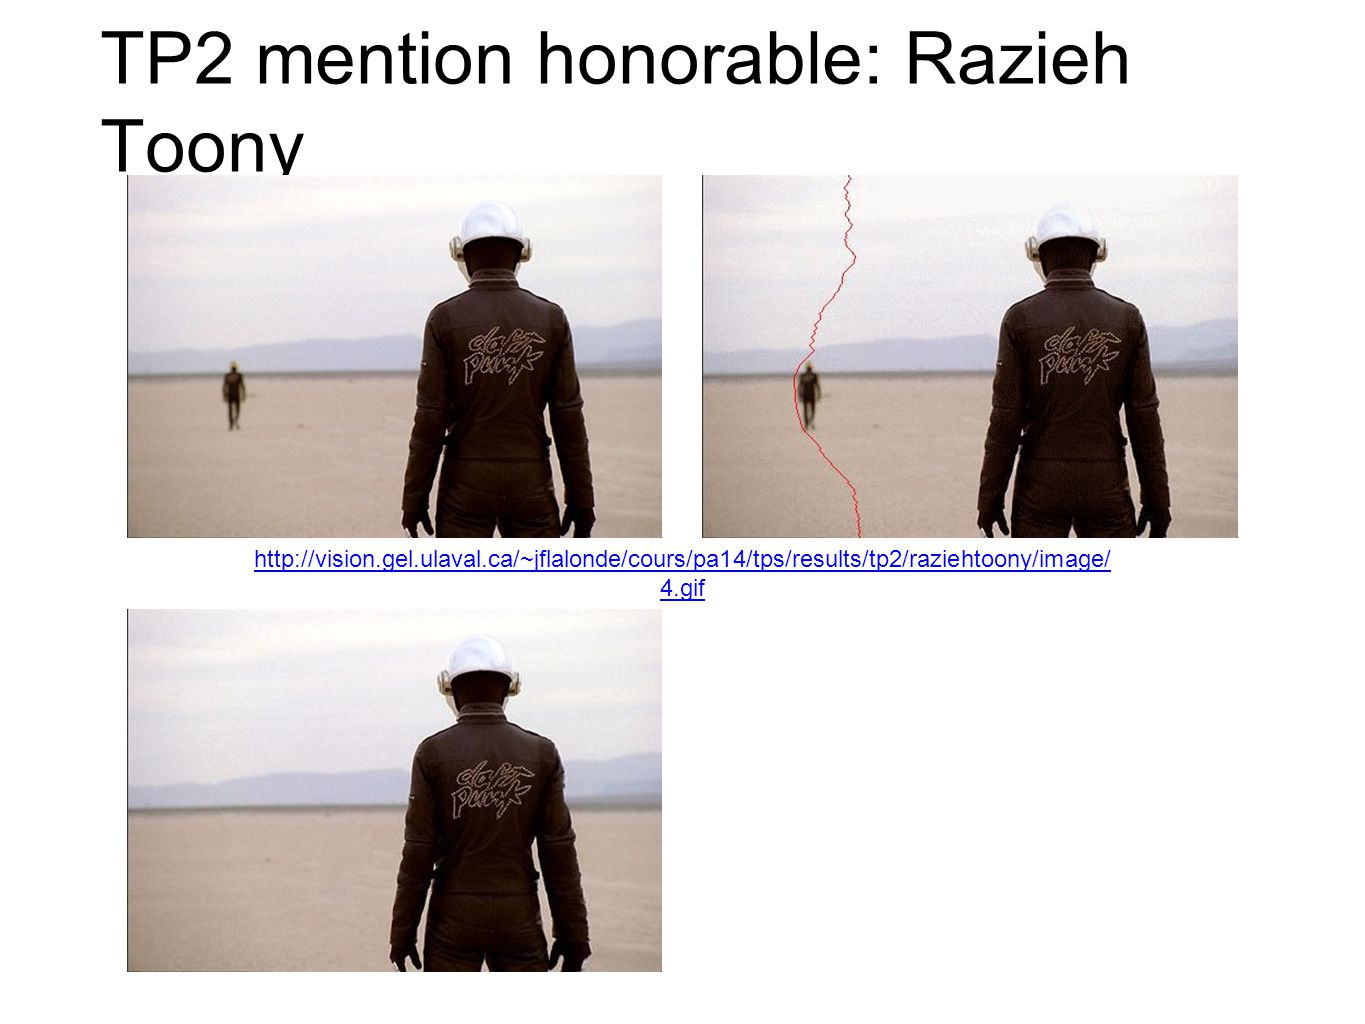 TP2 mention honorable: Razieh Toony